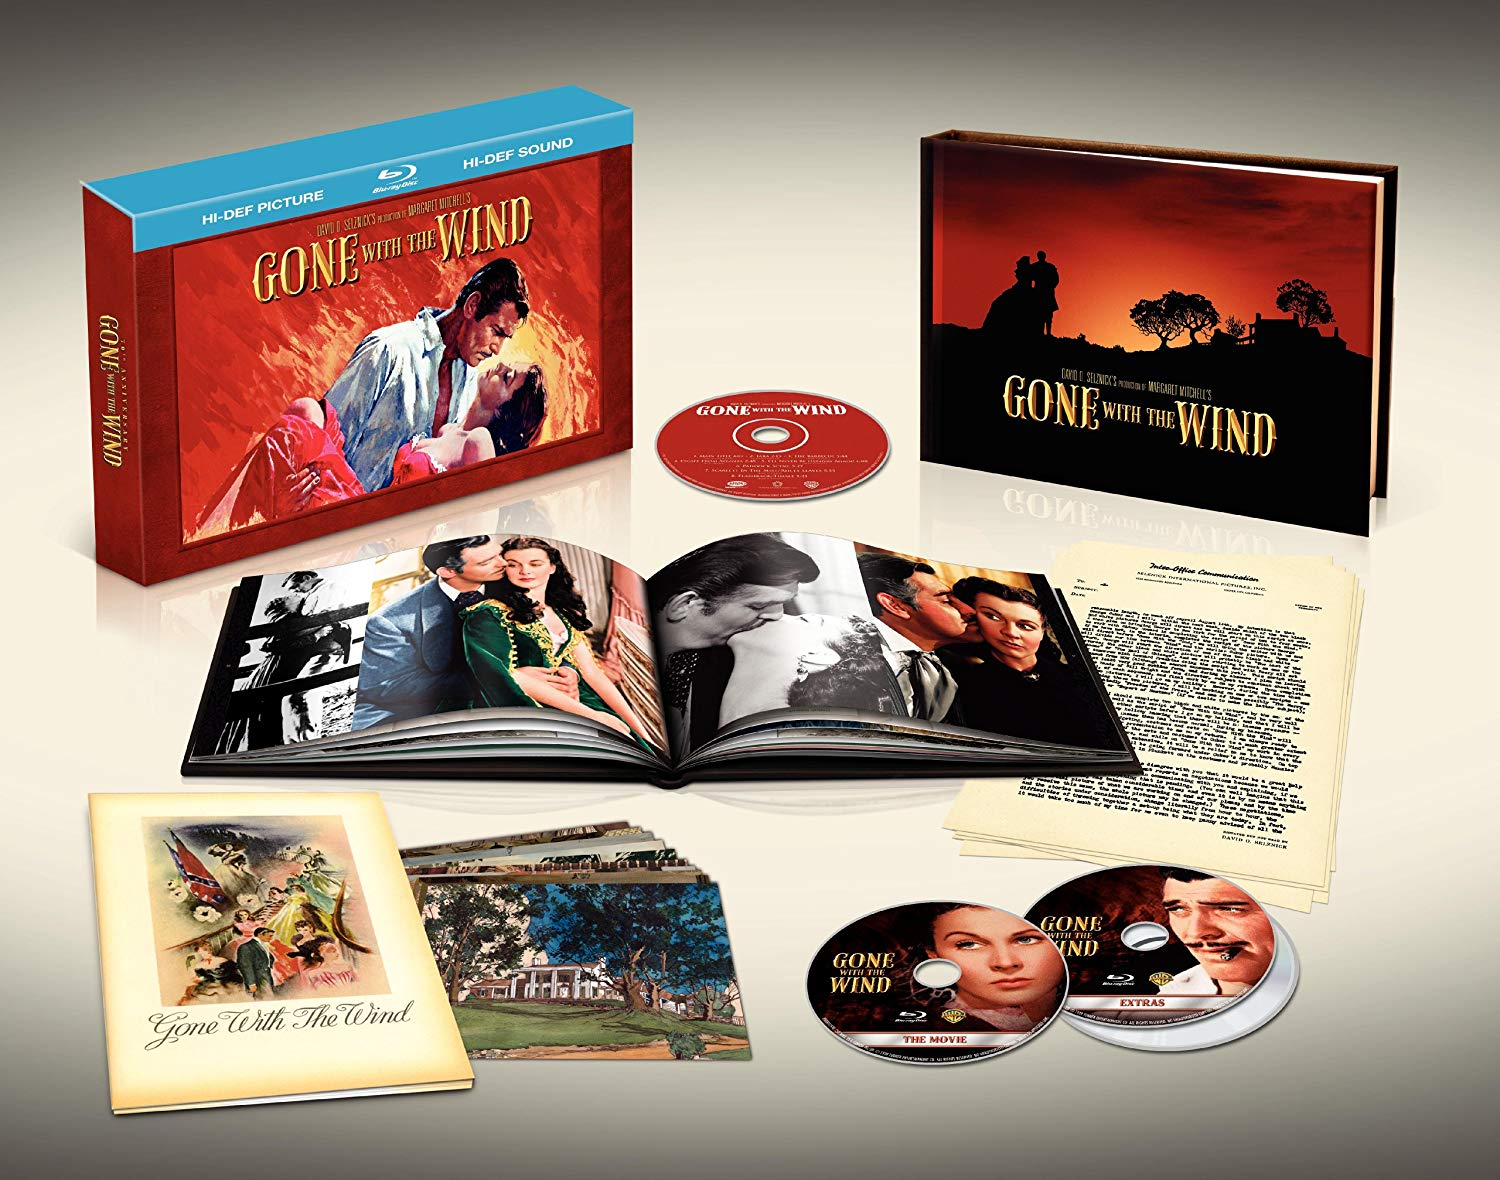 91xQITtBfHL. SL1500  Gone with the Wind 70th Anniversary Ultimate Collector's Edition